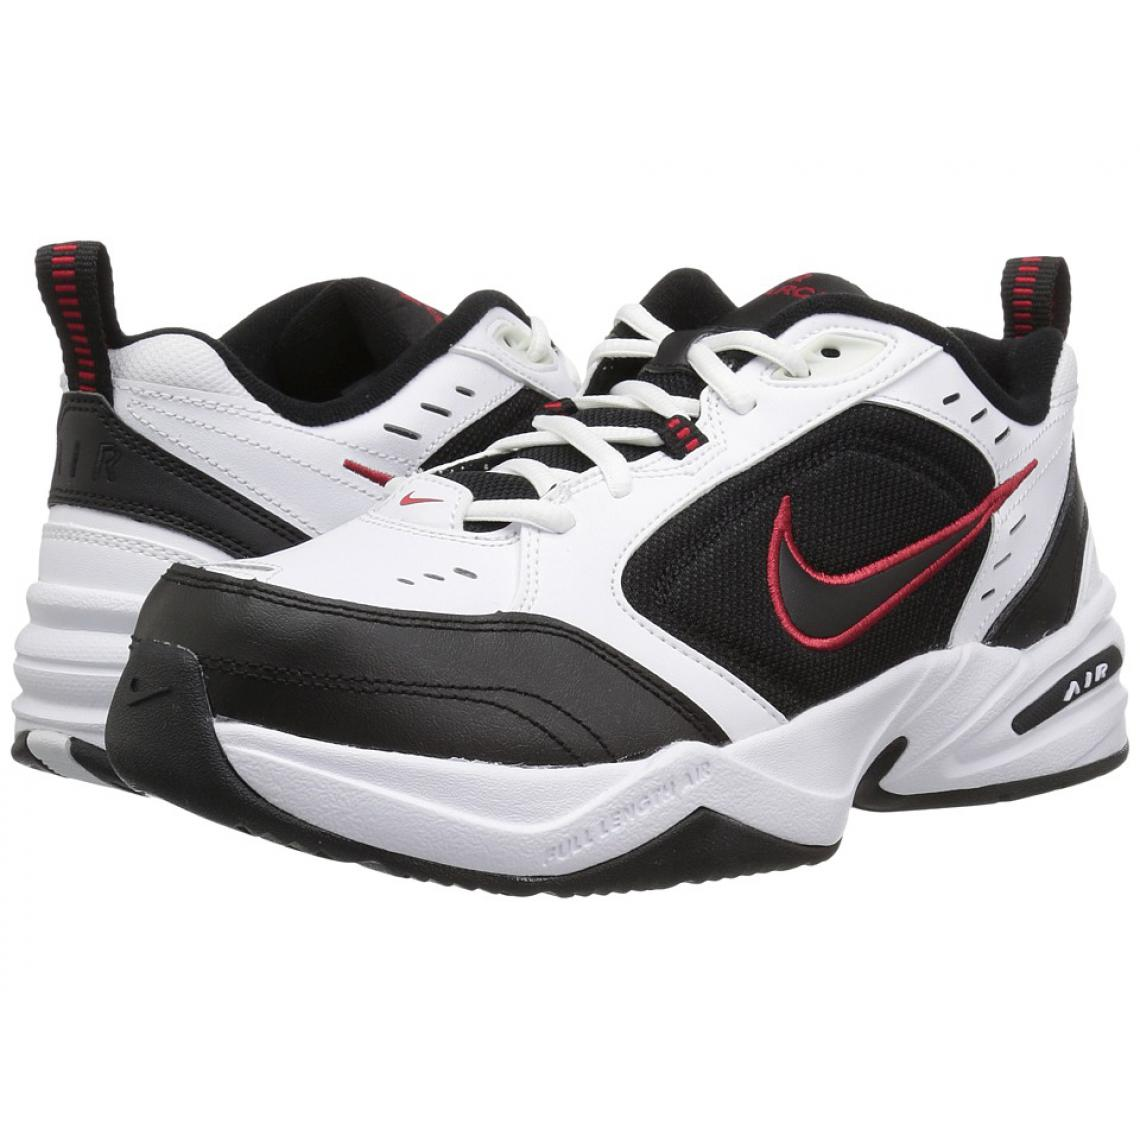 Suisses Monarch Air Nike3 Baskets Iv Homme rdChtsQx